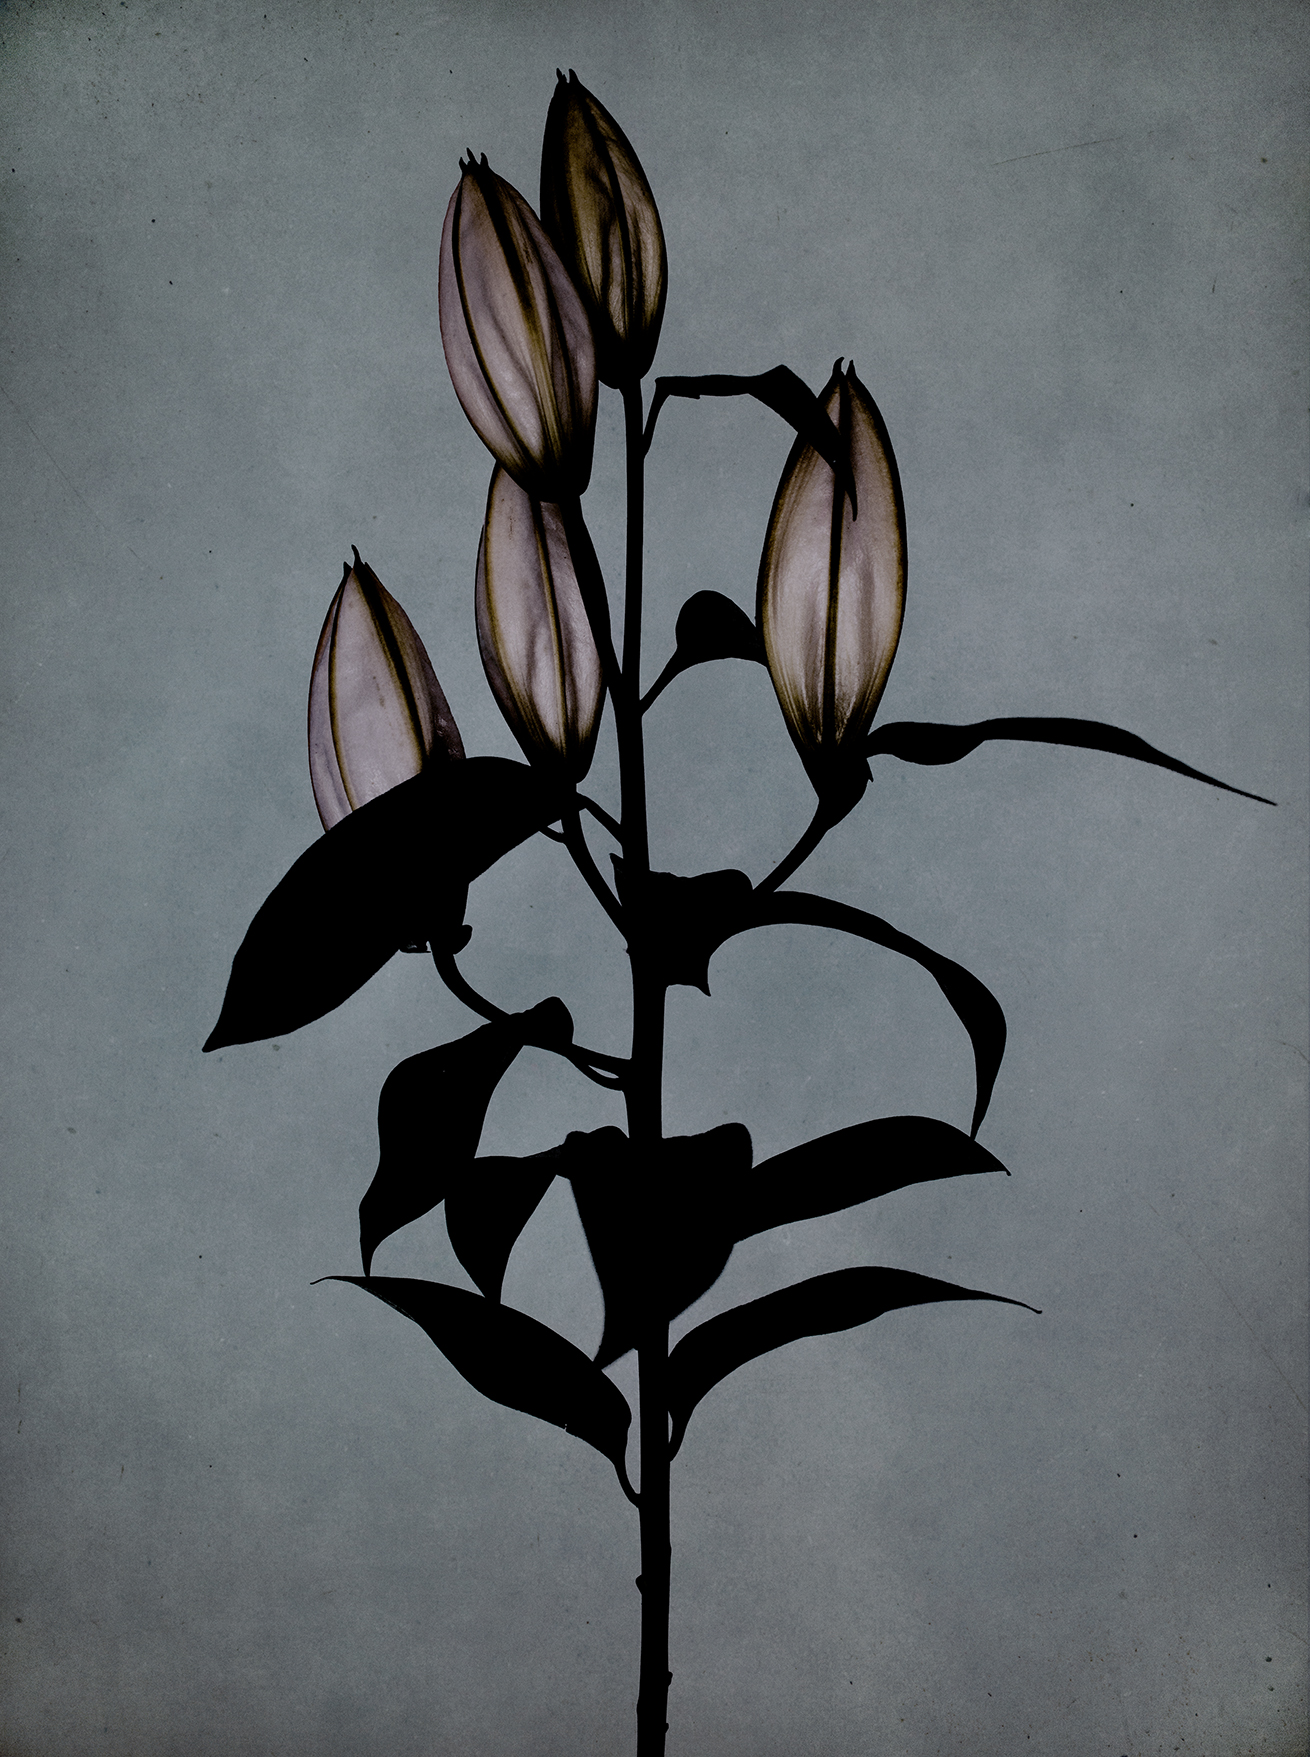 Lilies for a condolence